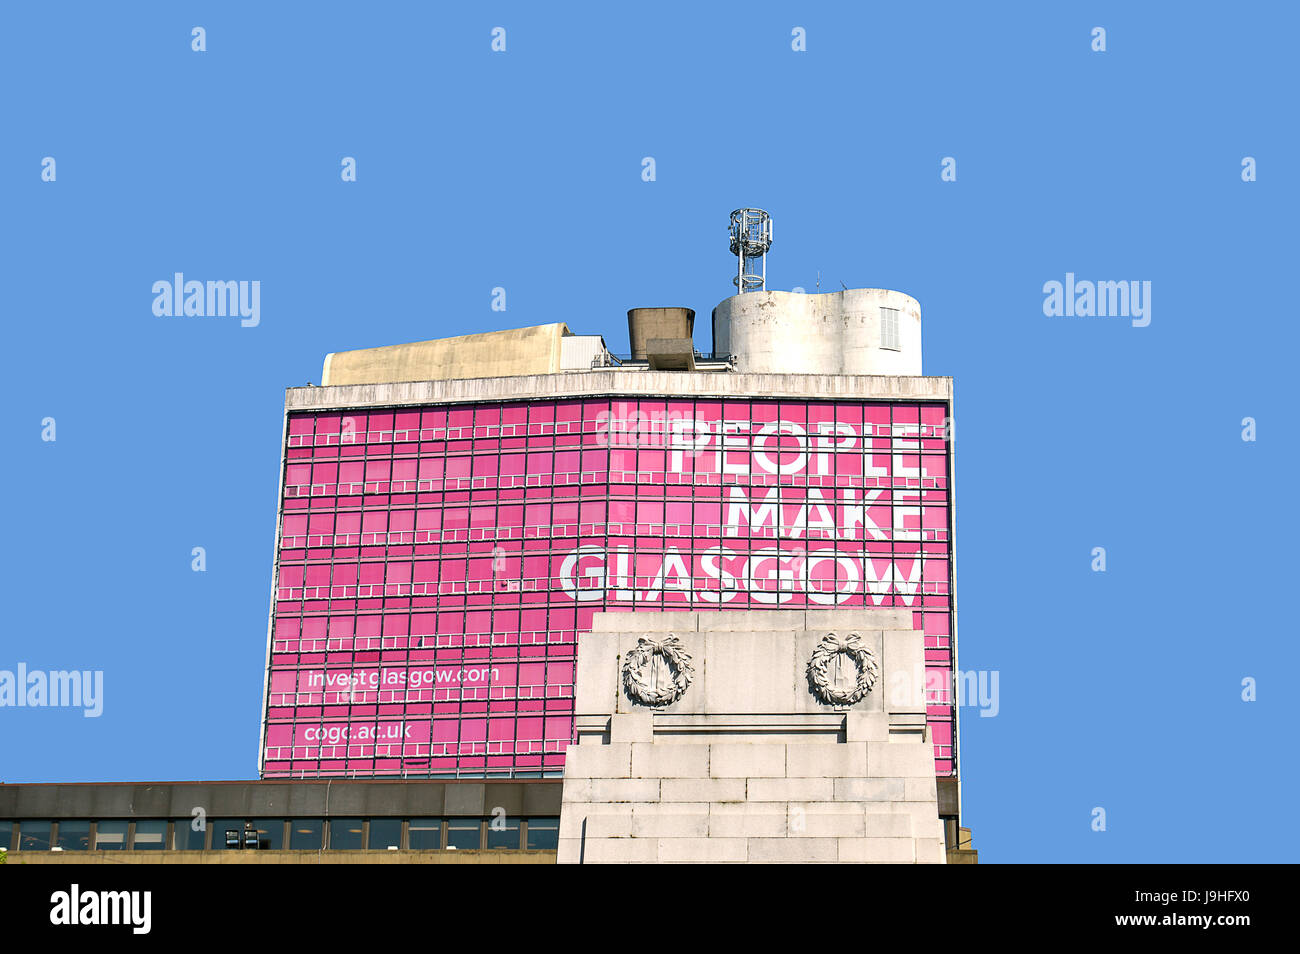 GLASGOW, SCOTLAND - 3 MAY 2017: A view over the cenotaph in George Square to the city's advertising slogan since - Stock Image